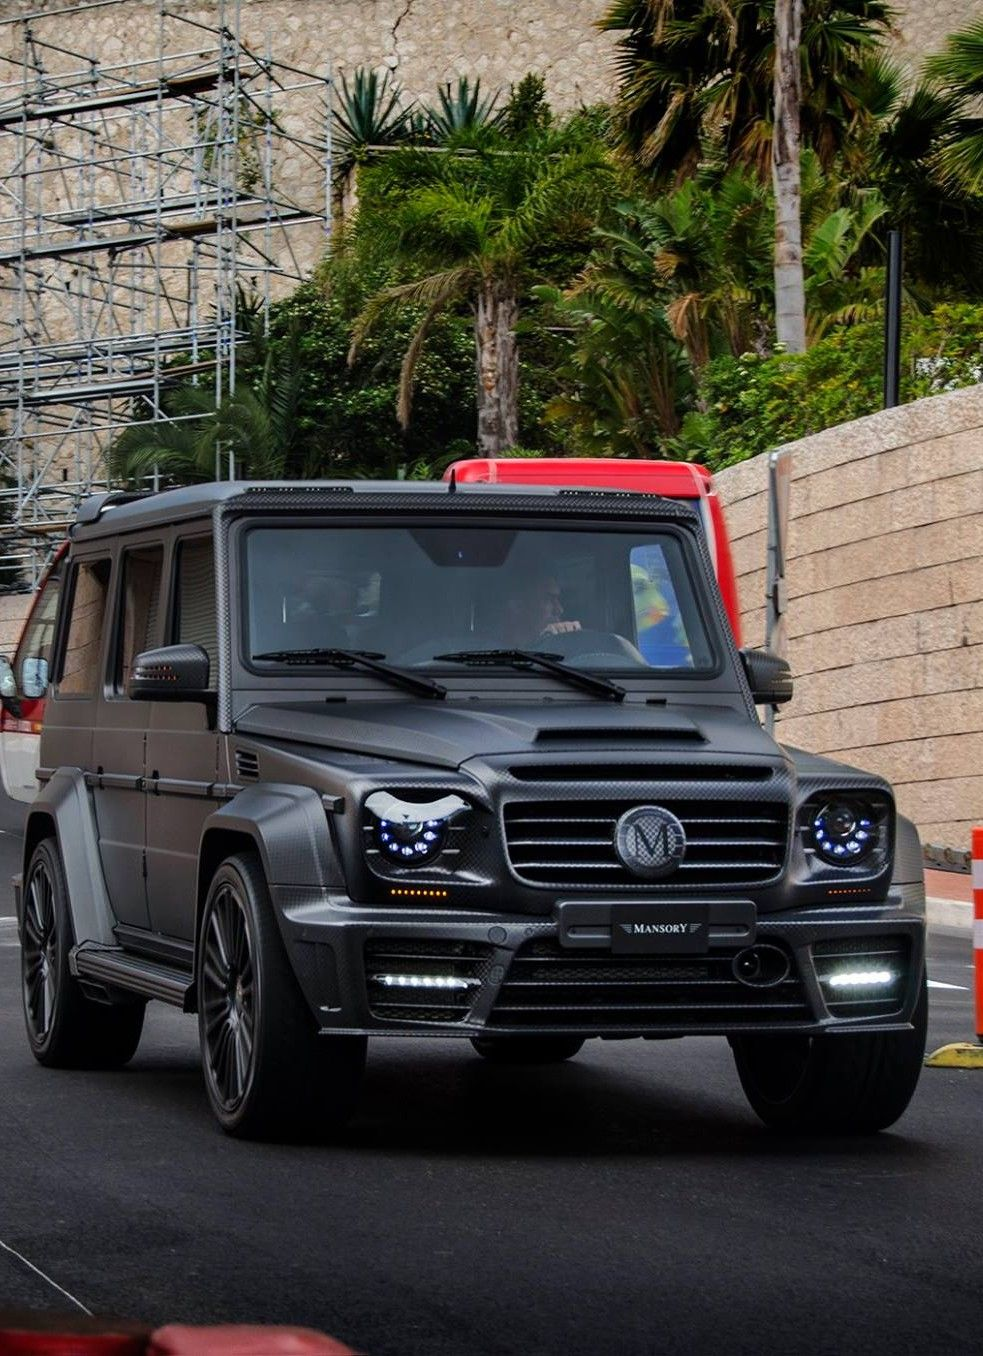 Mercedes g class gronos by mansory suv pinterest for Mercedes benz jeep g class